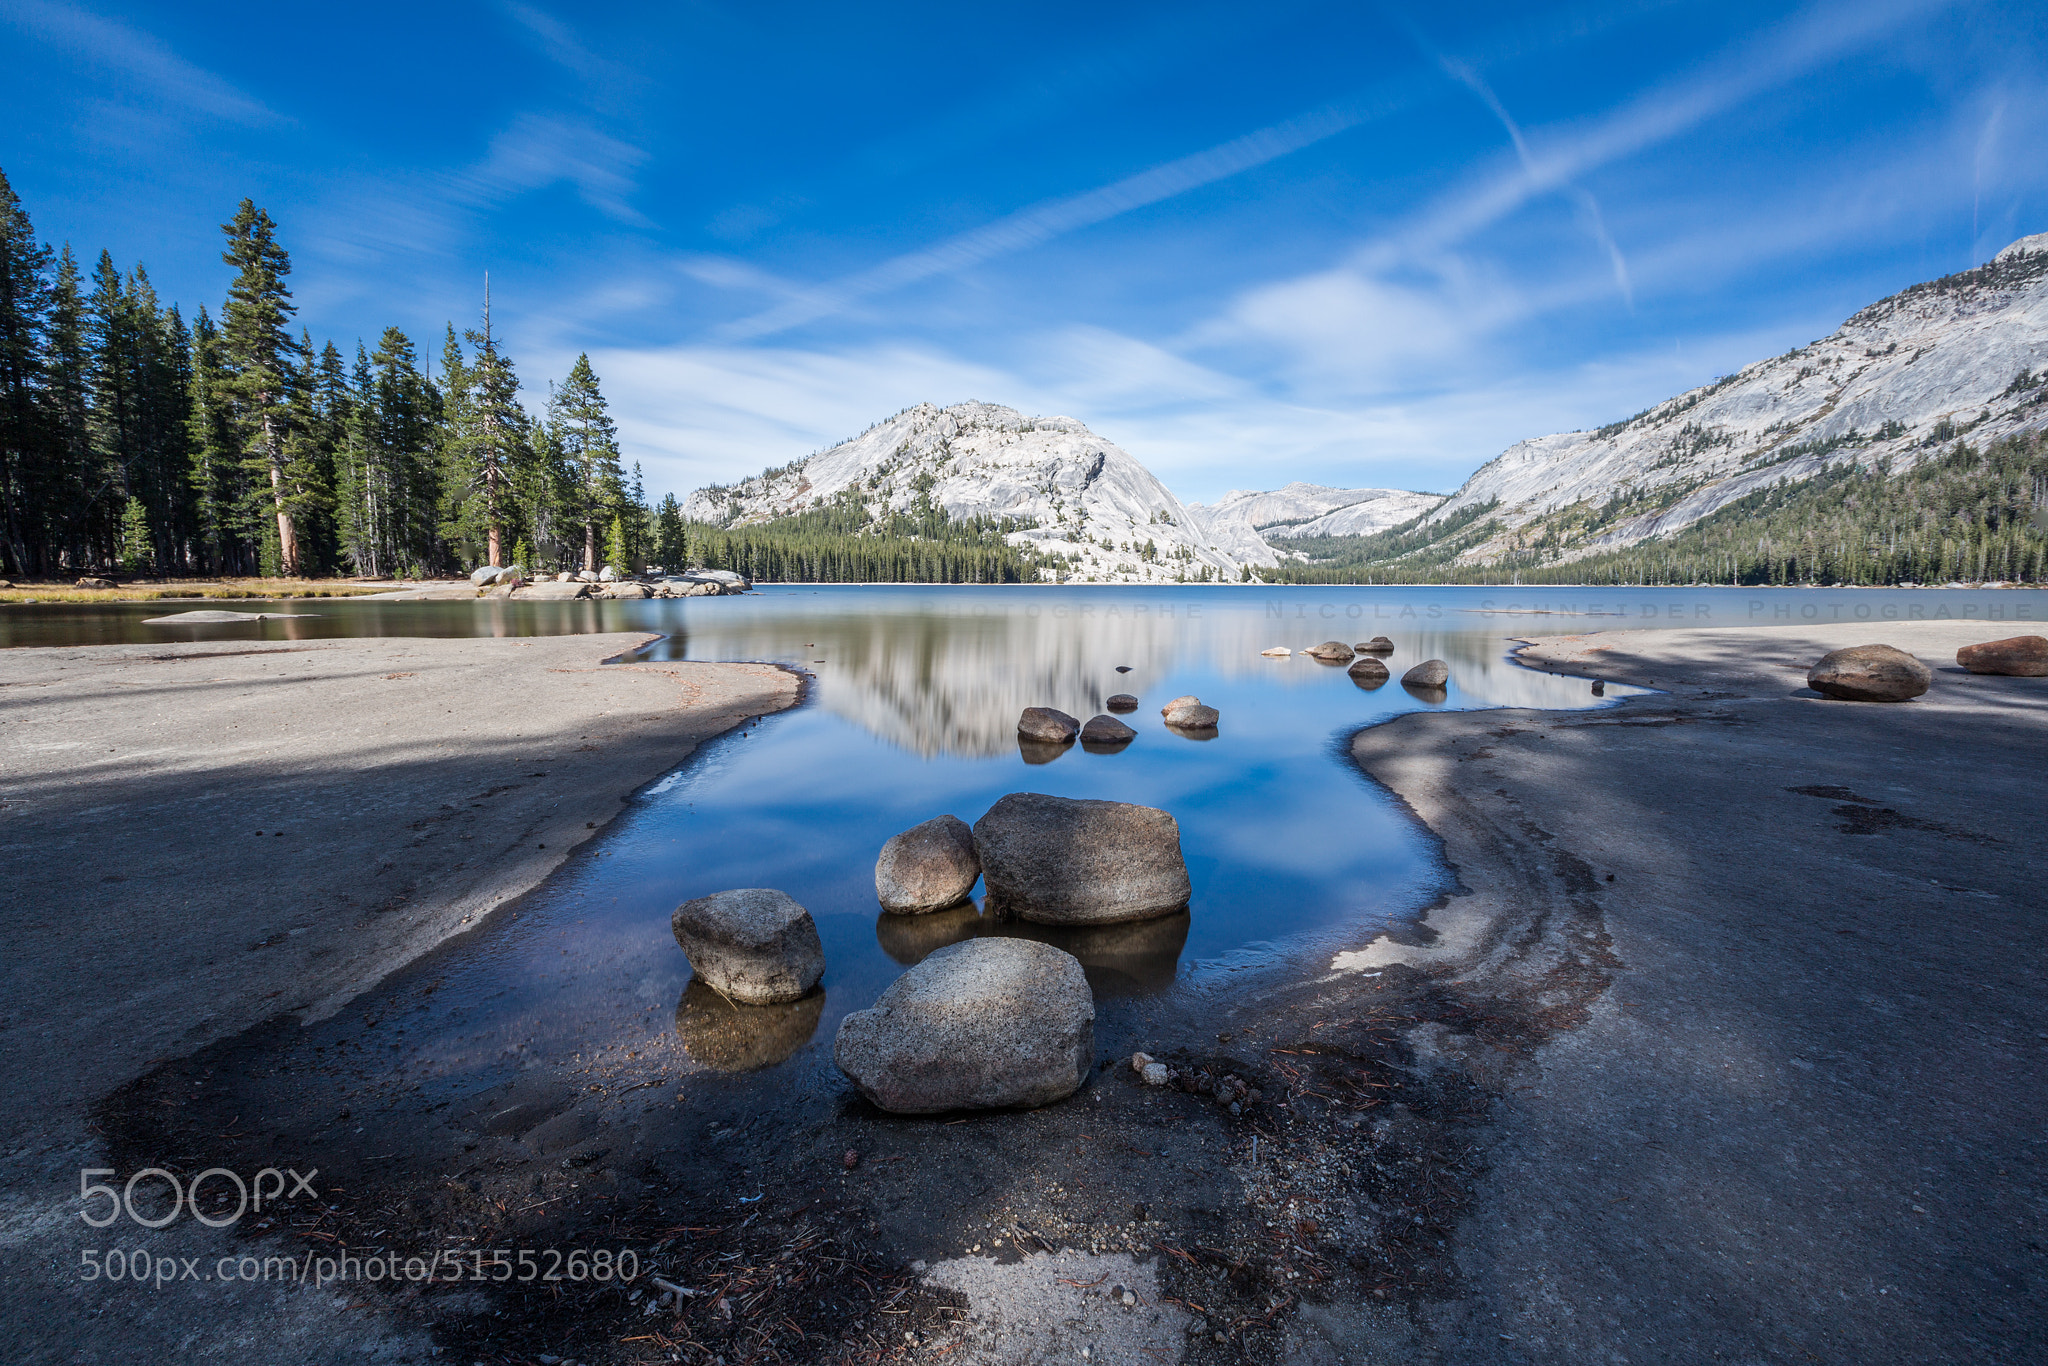 A stunning collection of Yosemite National Park photos featuring some of the most scenic locations both inside and outside the park.